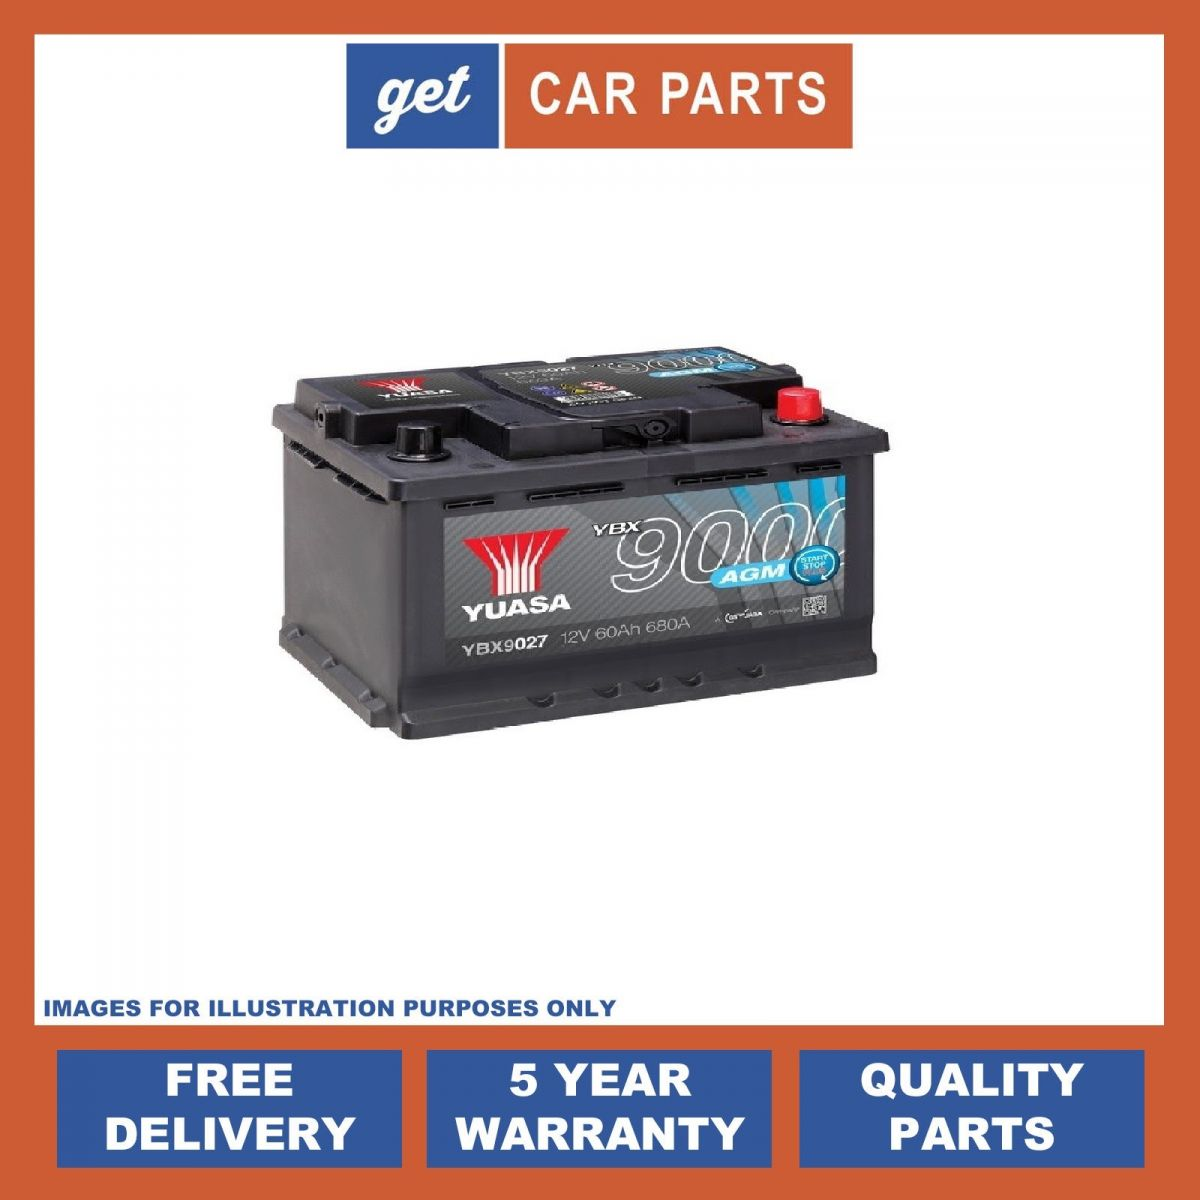 Car Battery For Audi A3: AUDI A1 & A3 Yuasa YBX9027 AGM Start Stop Plus Battery.